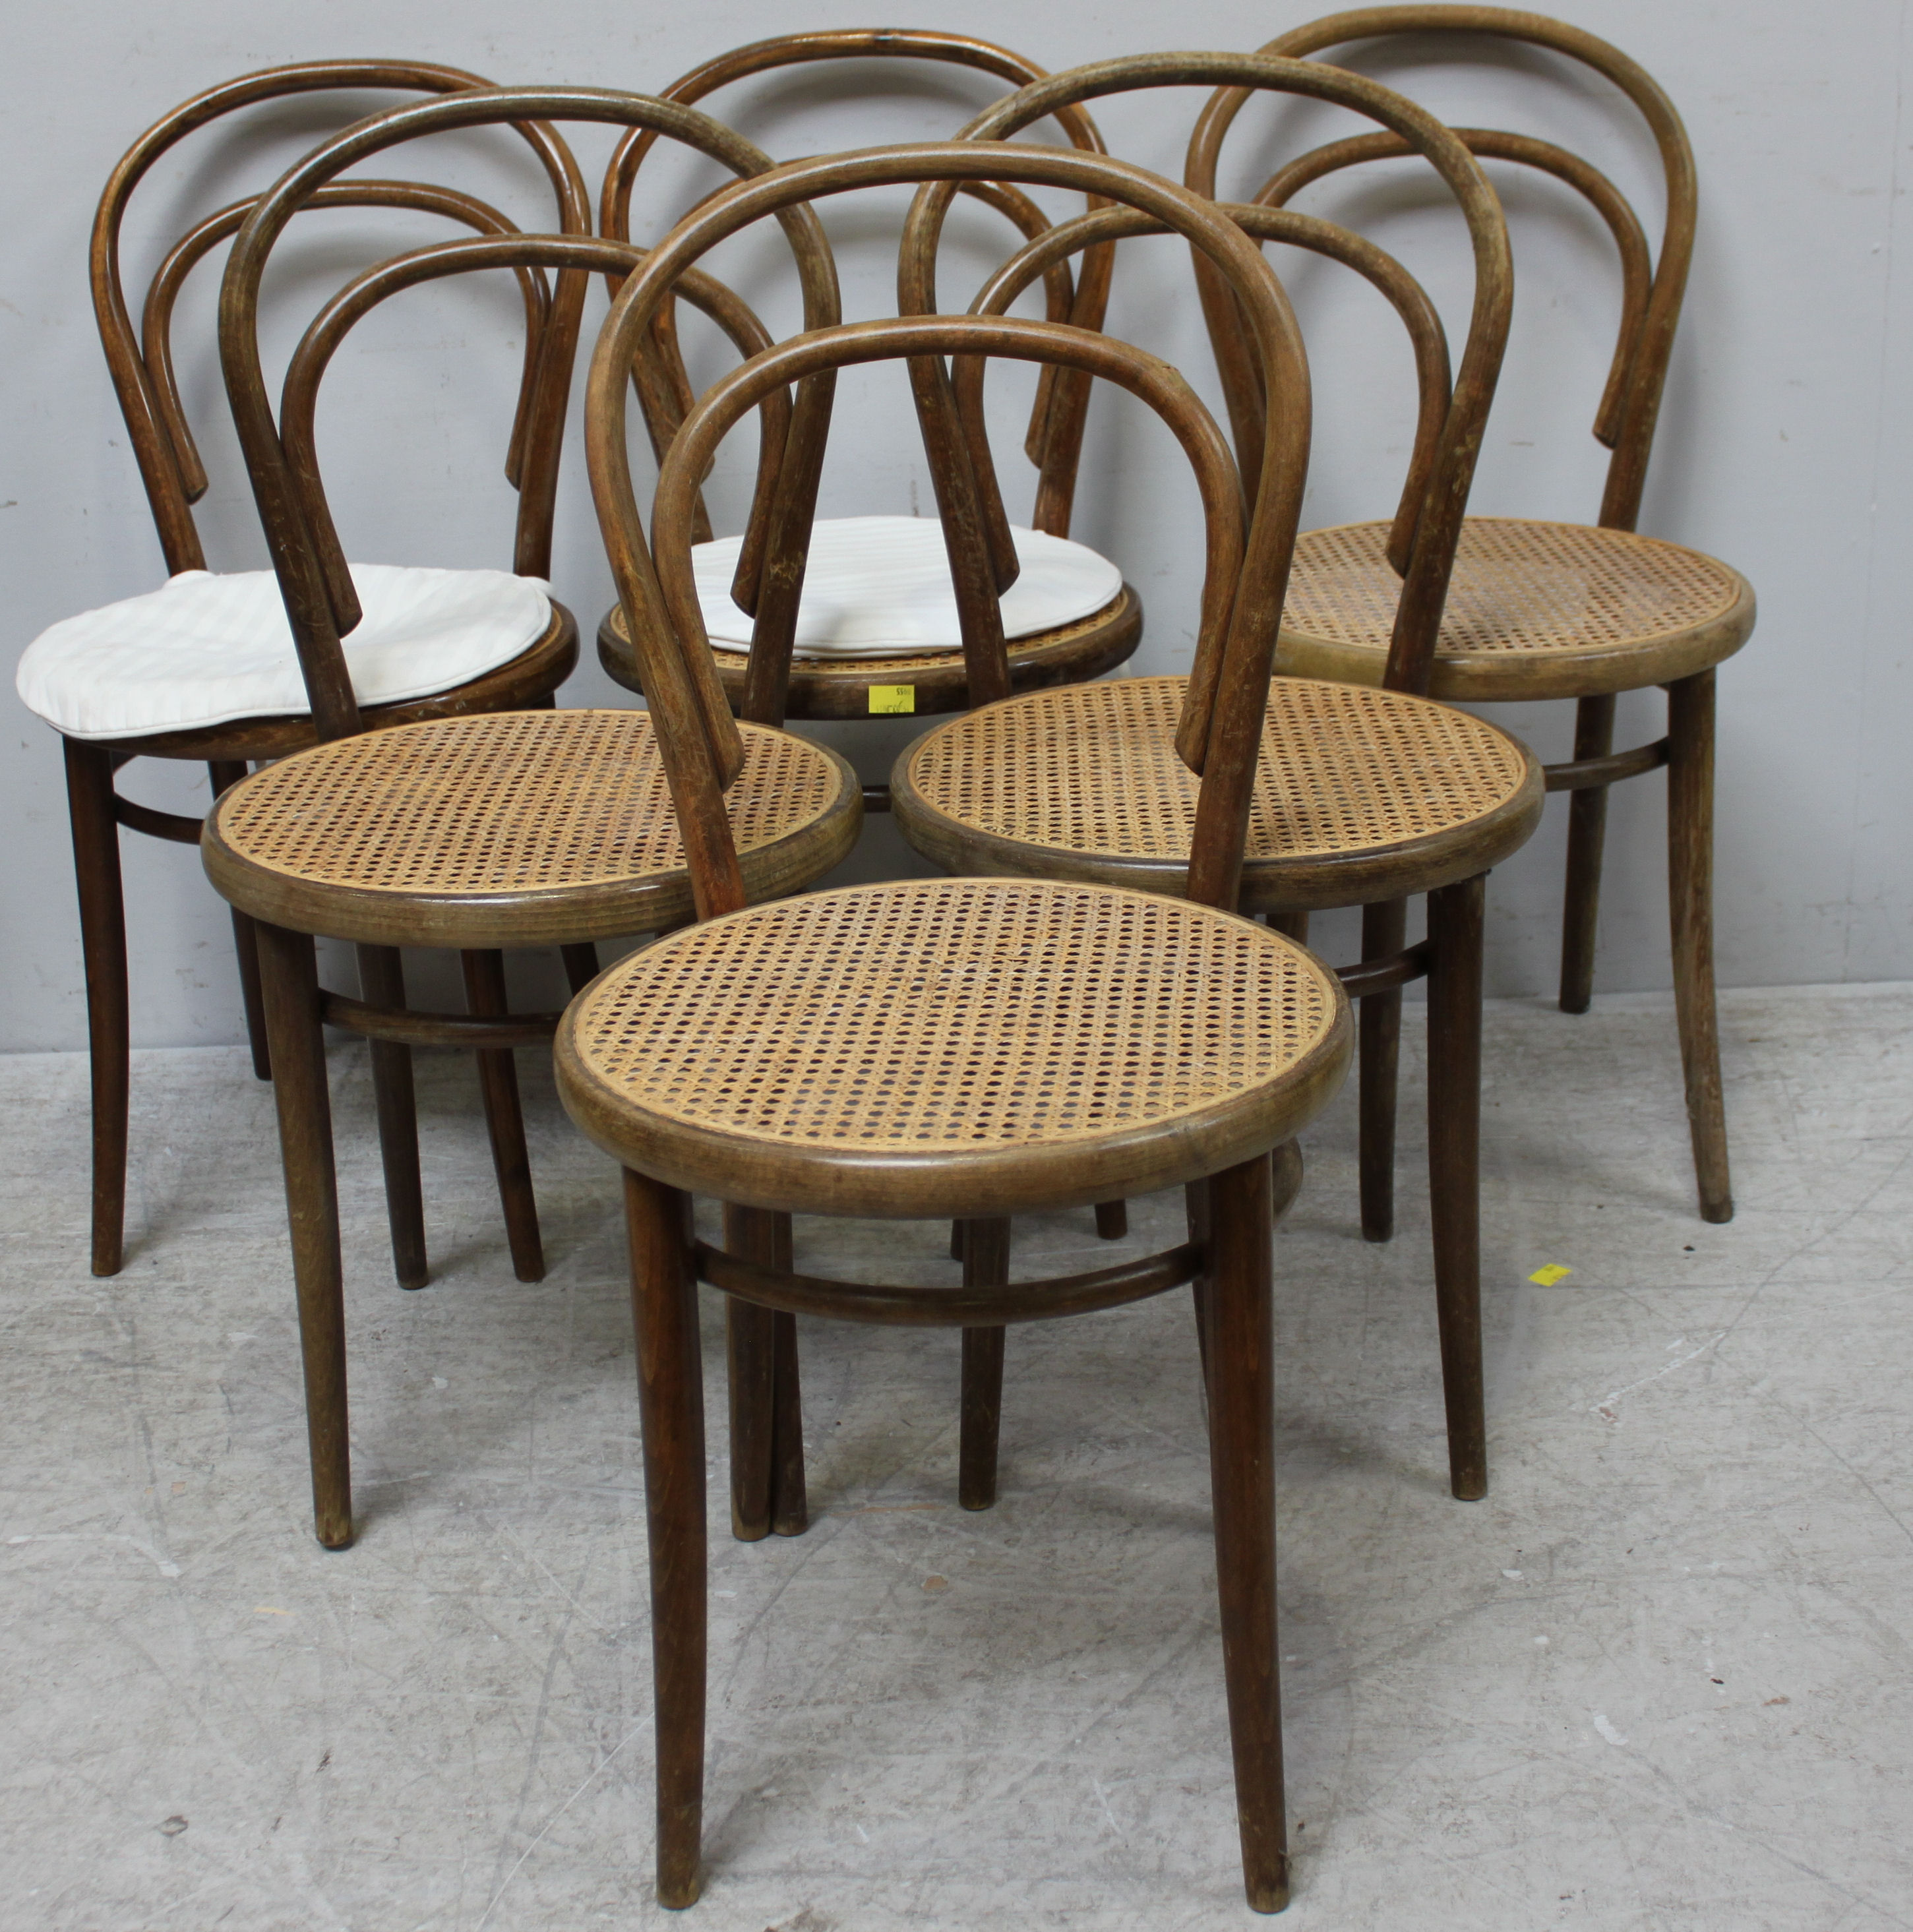 Six bentwood style chairs by Drevounia with caned seats